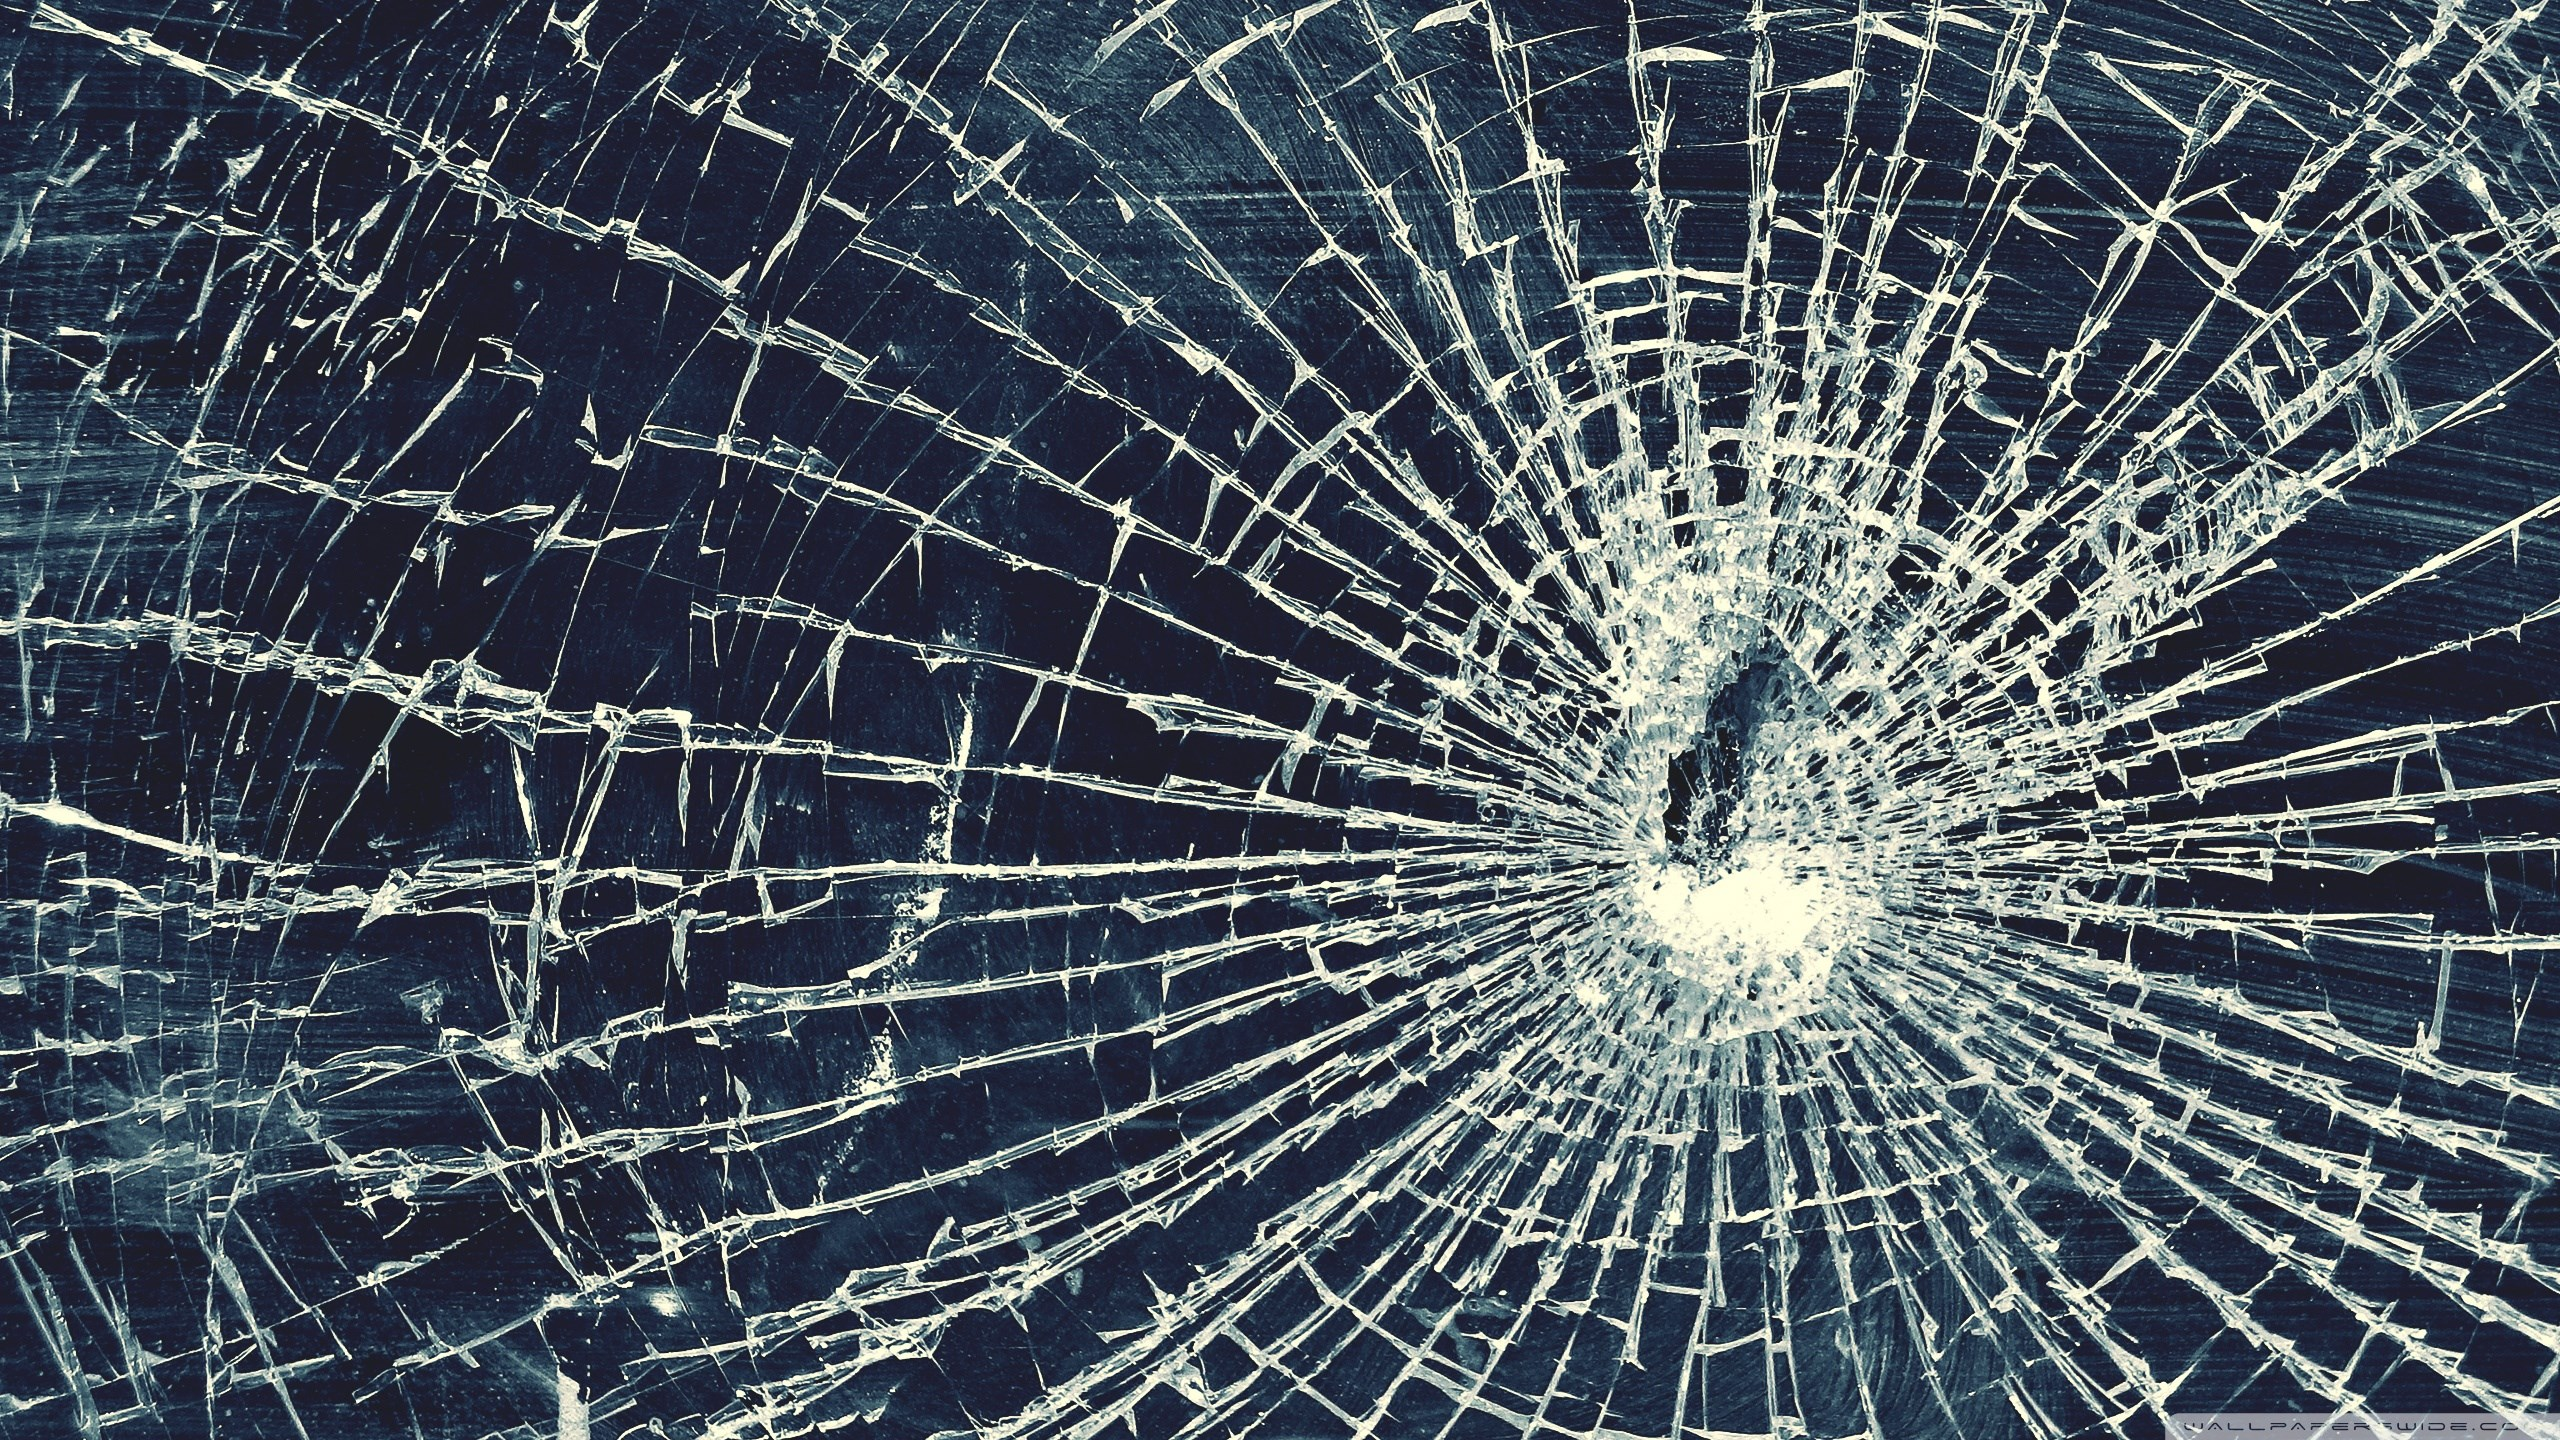 broken-glass-1080p-high-quality-x-wallpaper-wp3803449